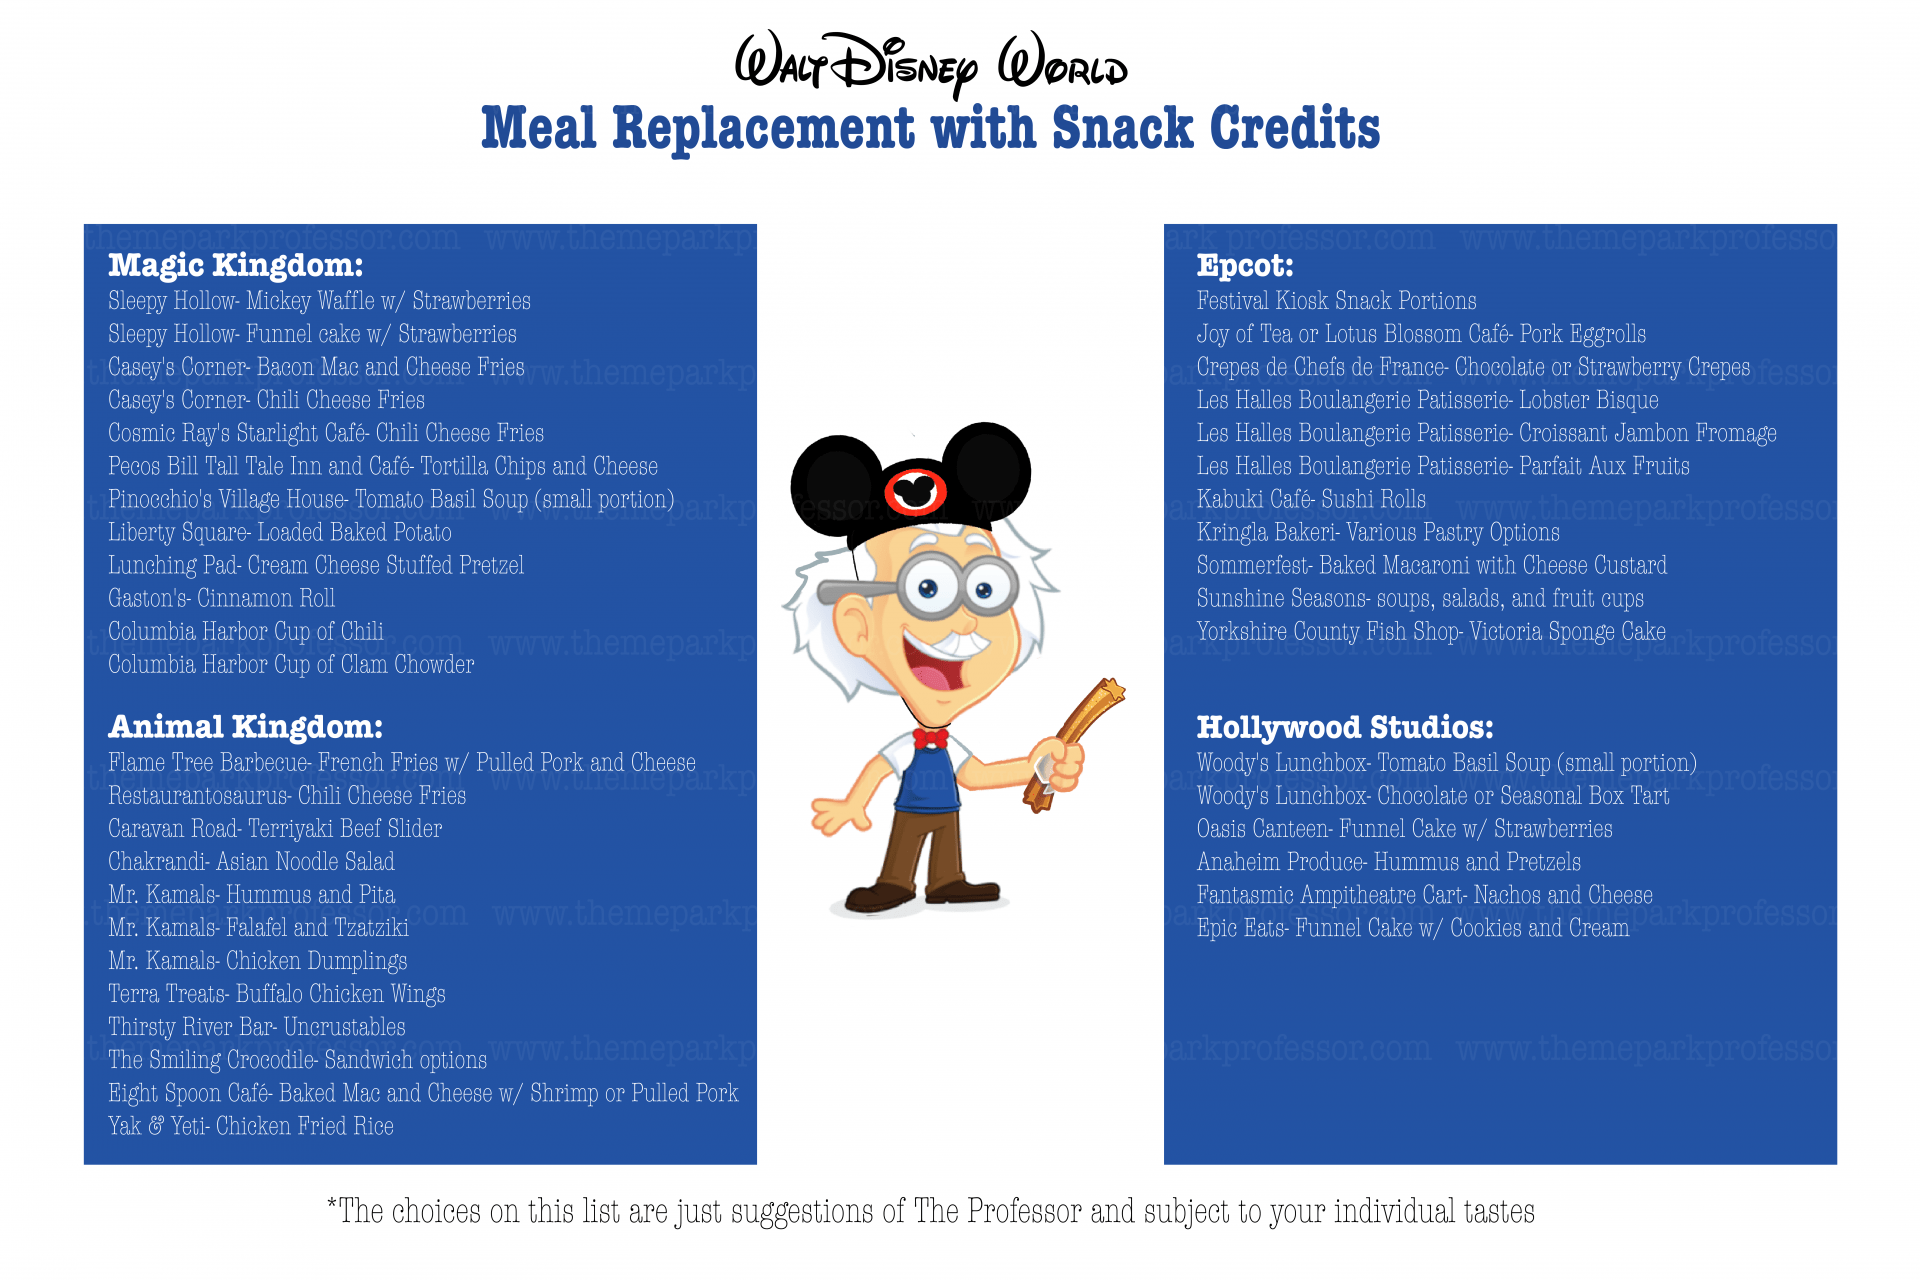 Walt Disney World Meal Replacements Using Snack Credits